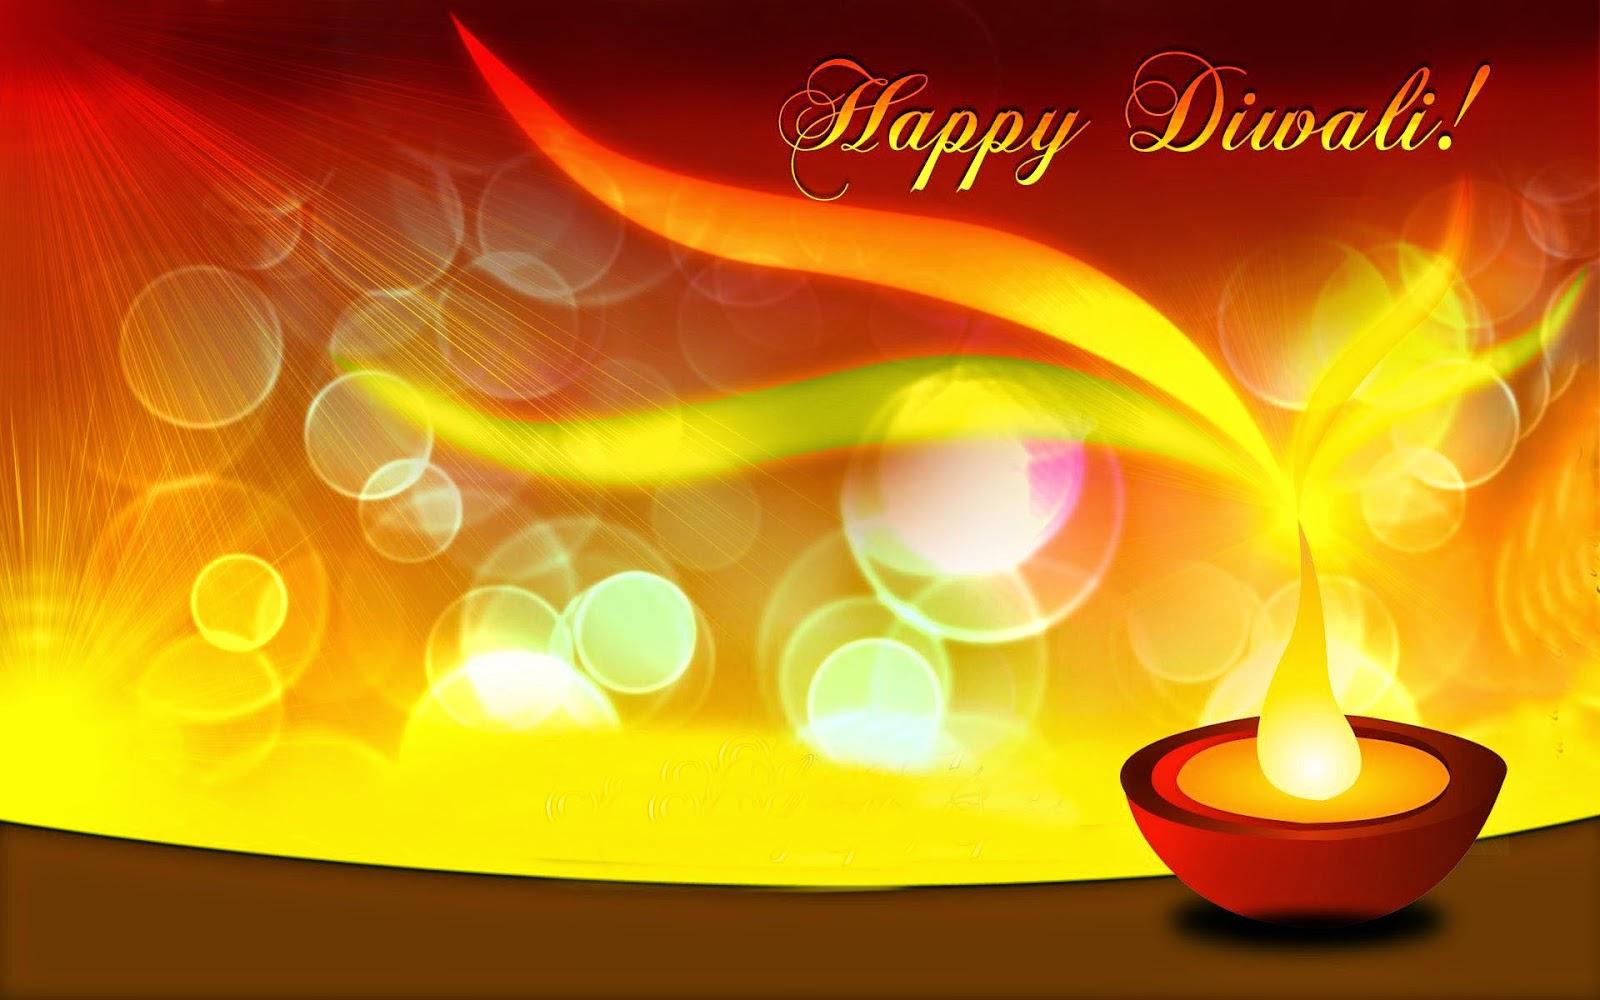 Happy Diwali 2014 Greeting and Wishes HD Wallpapers Free Download ... for Diwali Lamp Free Download  70ref